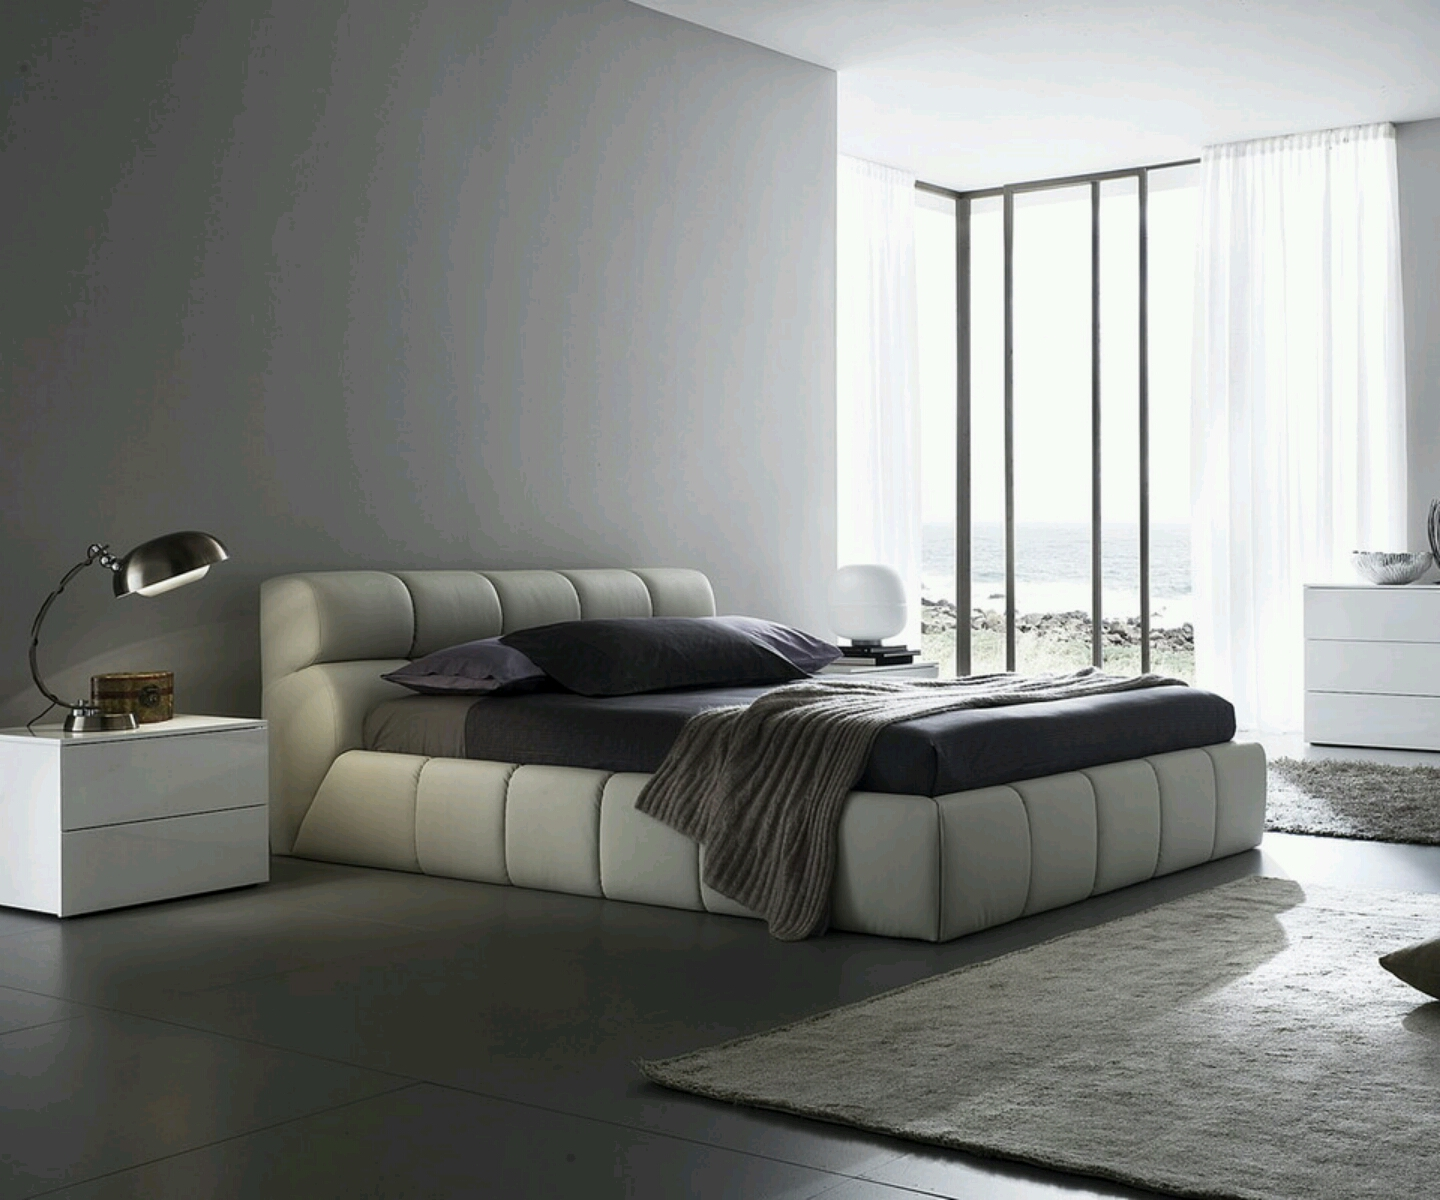 Modern furniture modern bed designs beautiful bedrooms for Modern bedroom designs ideas